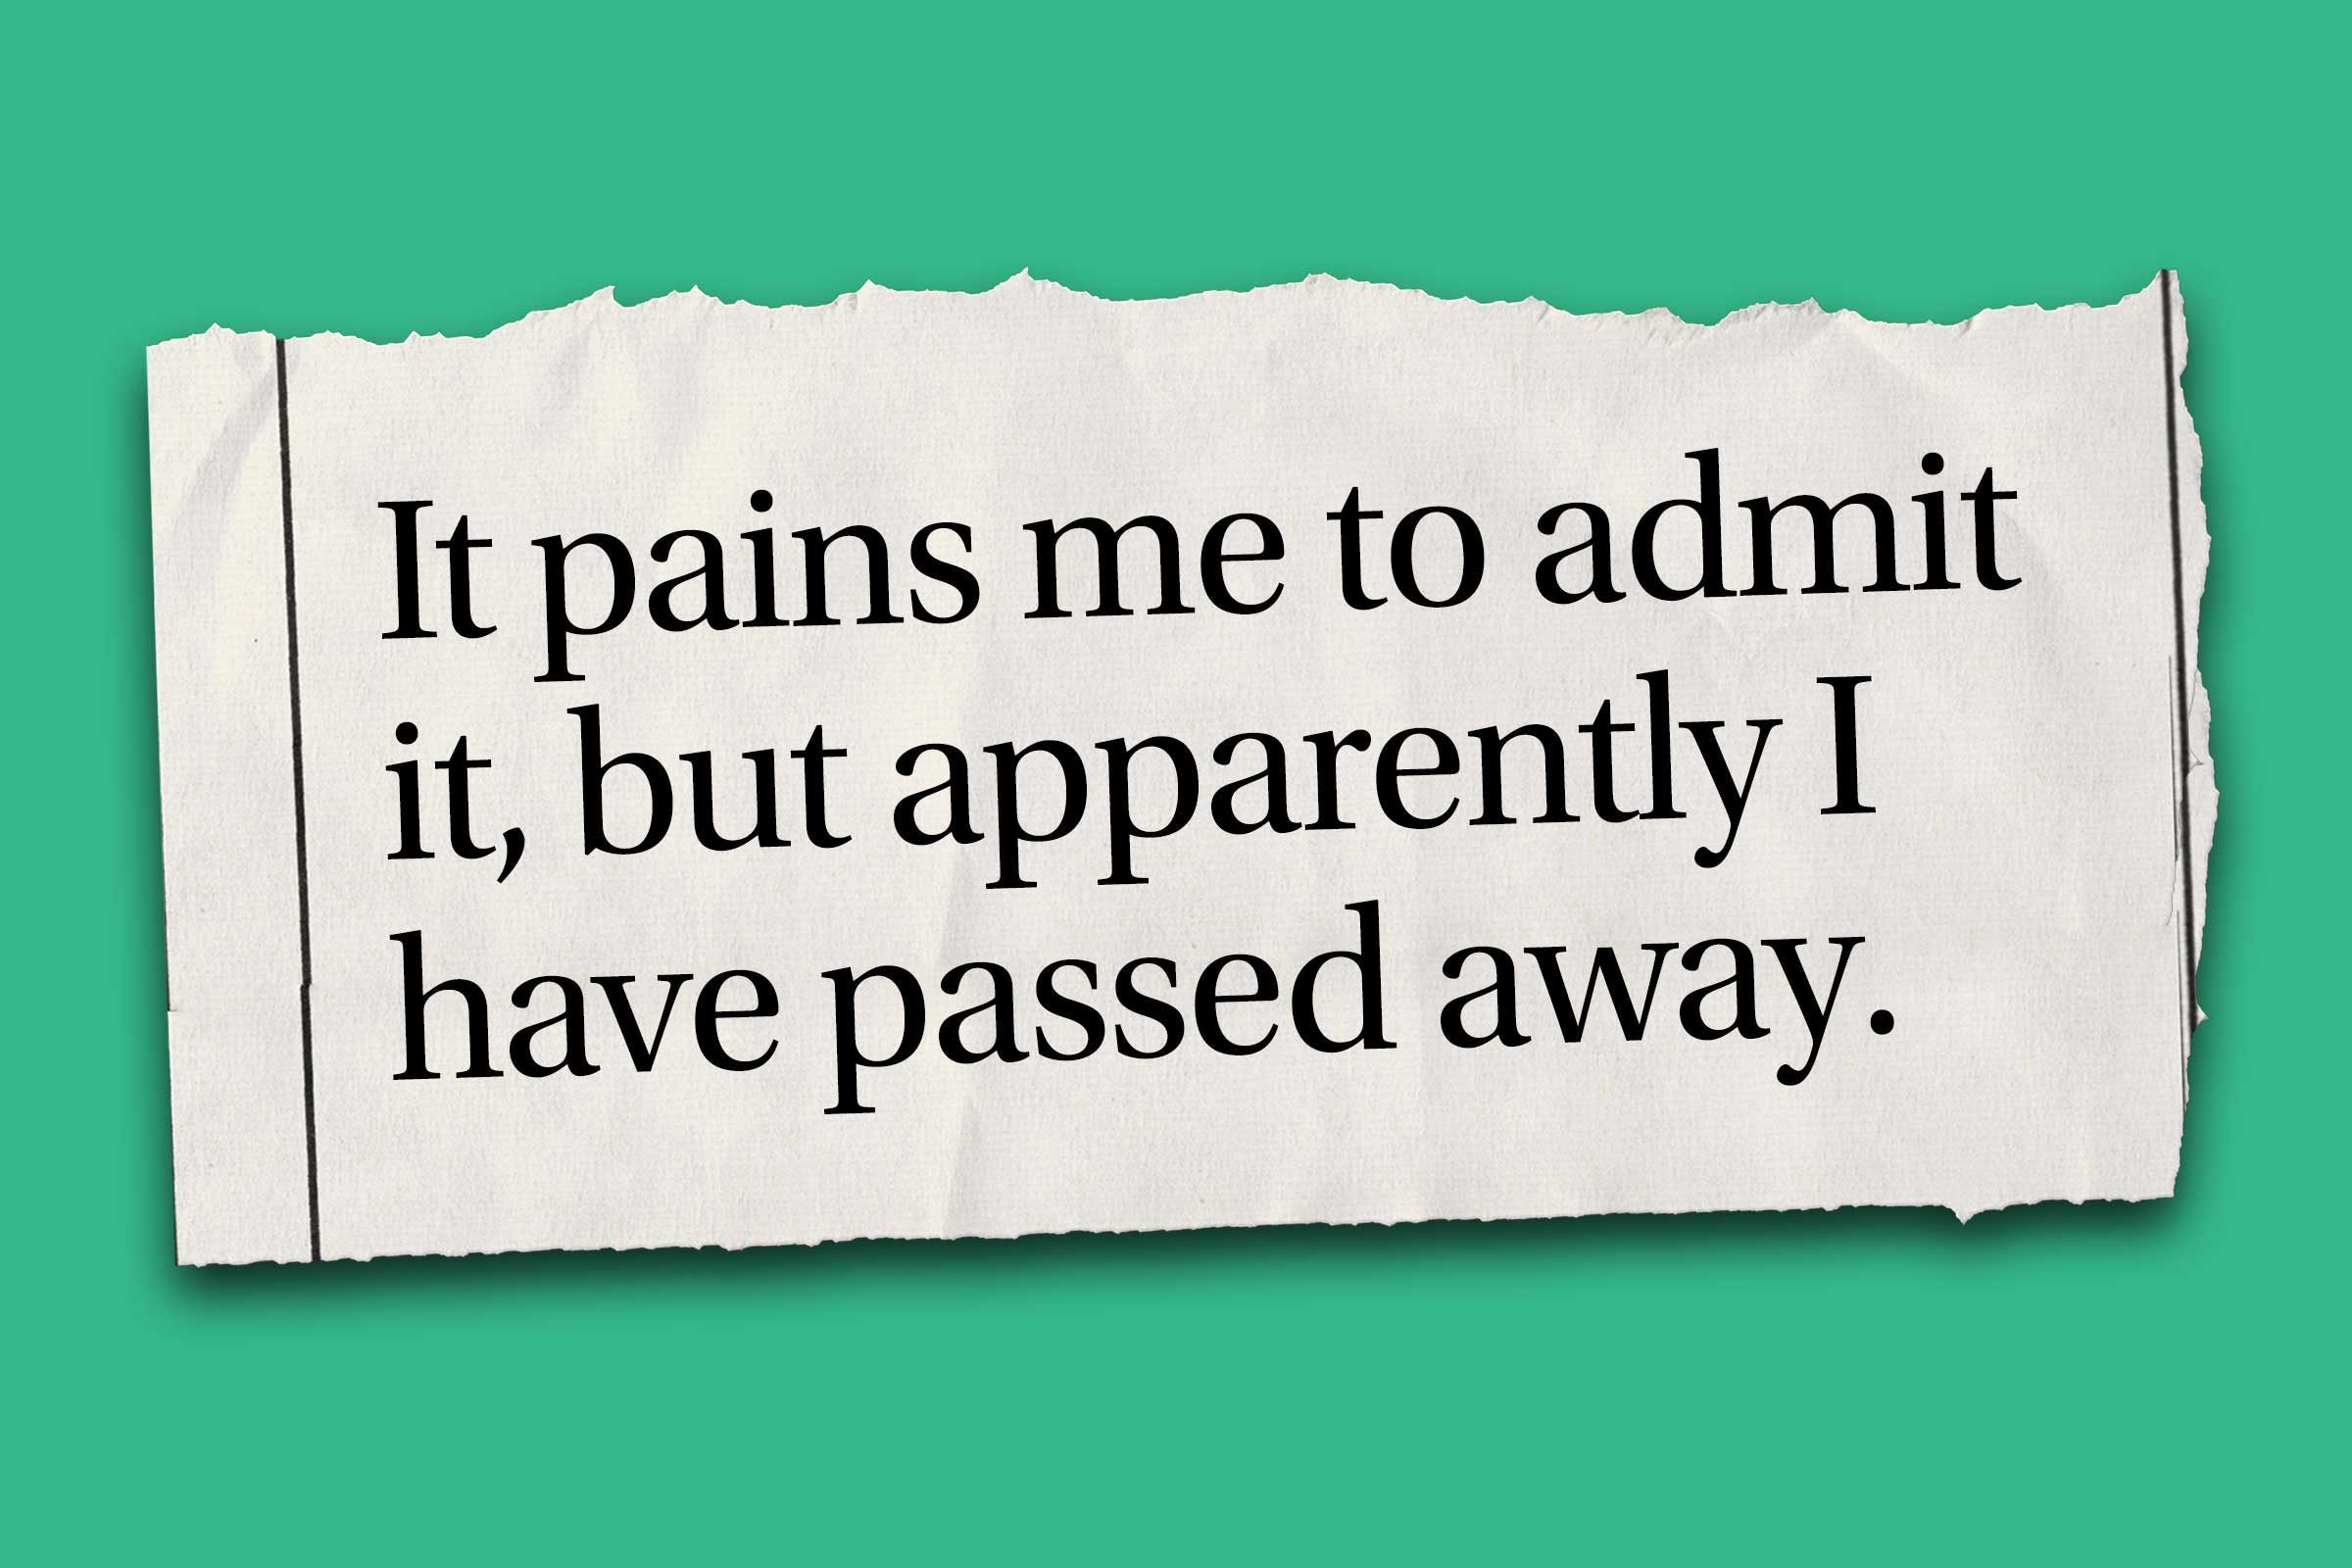 """Funniest obituaries that really exist - """"It pains me to admit it, but apparently I have passed away."""""""